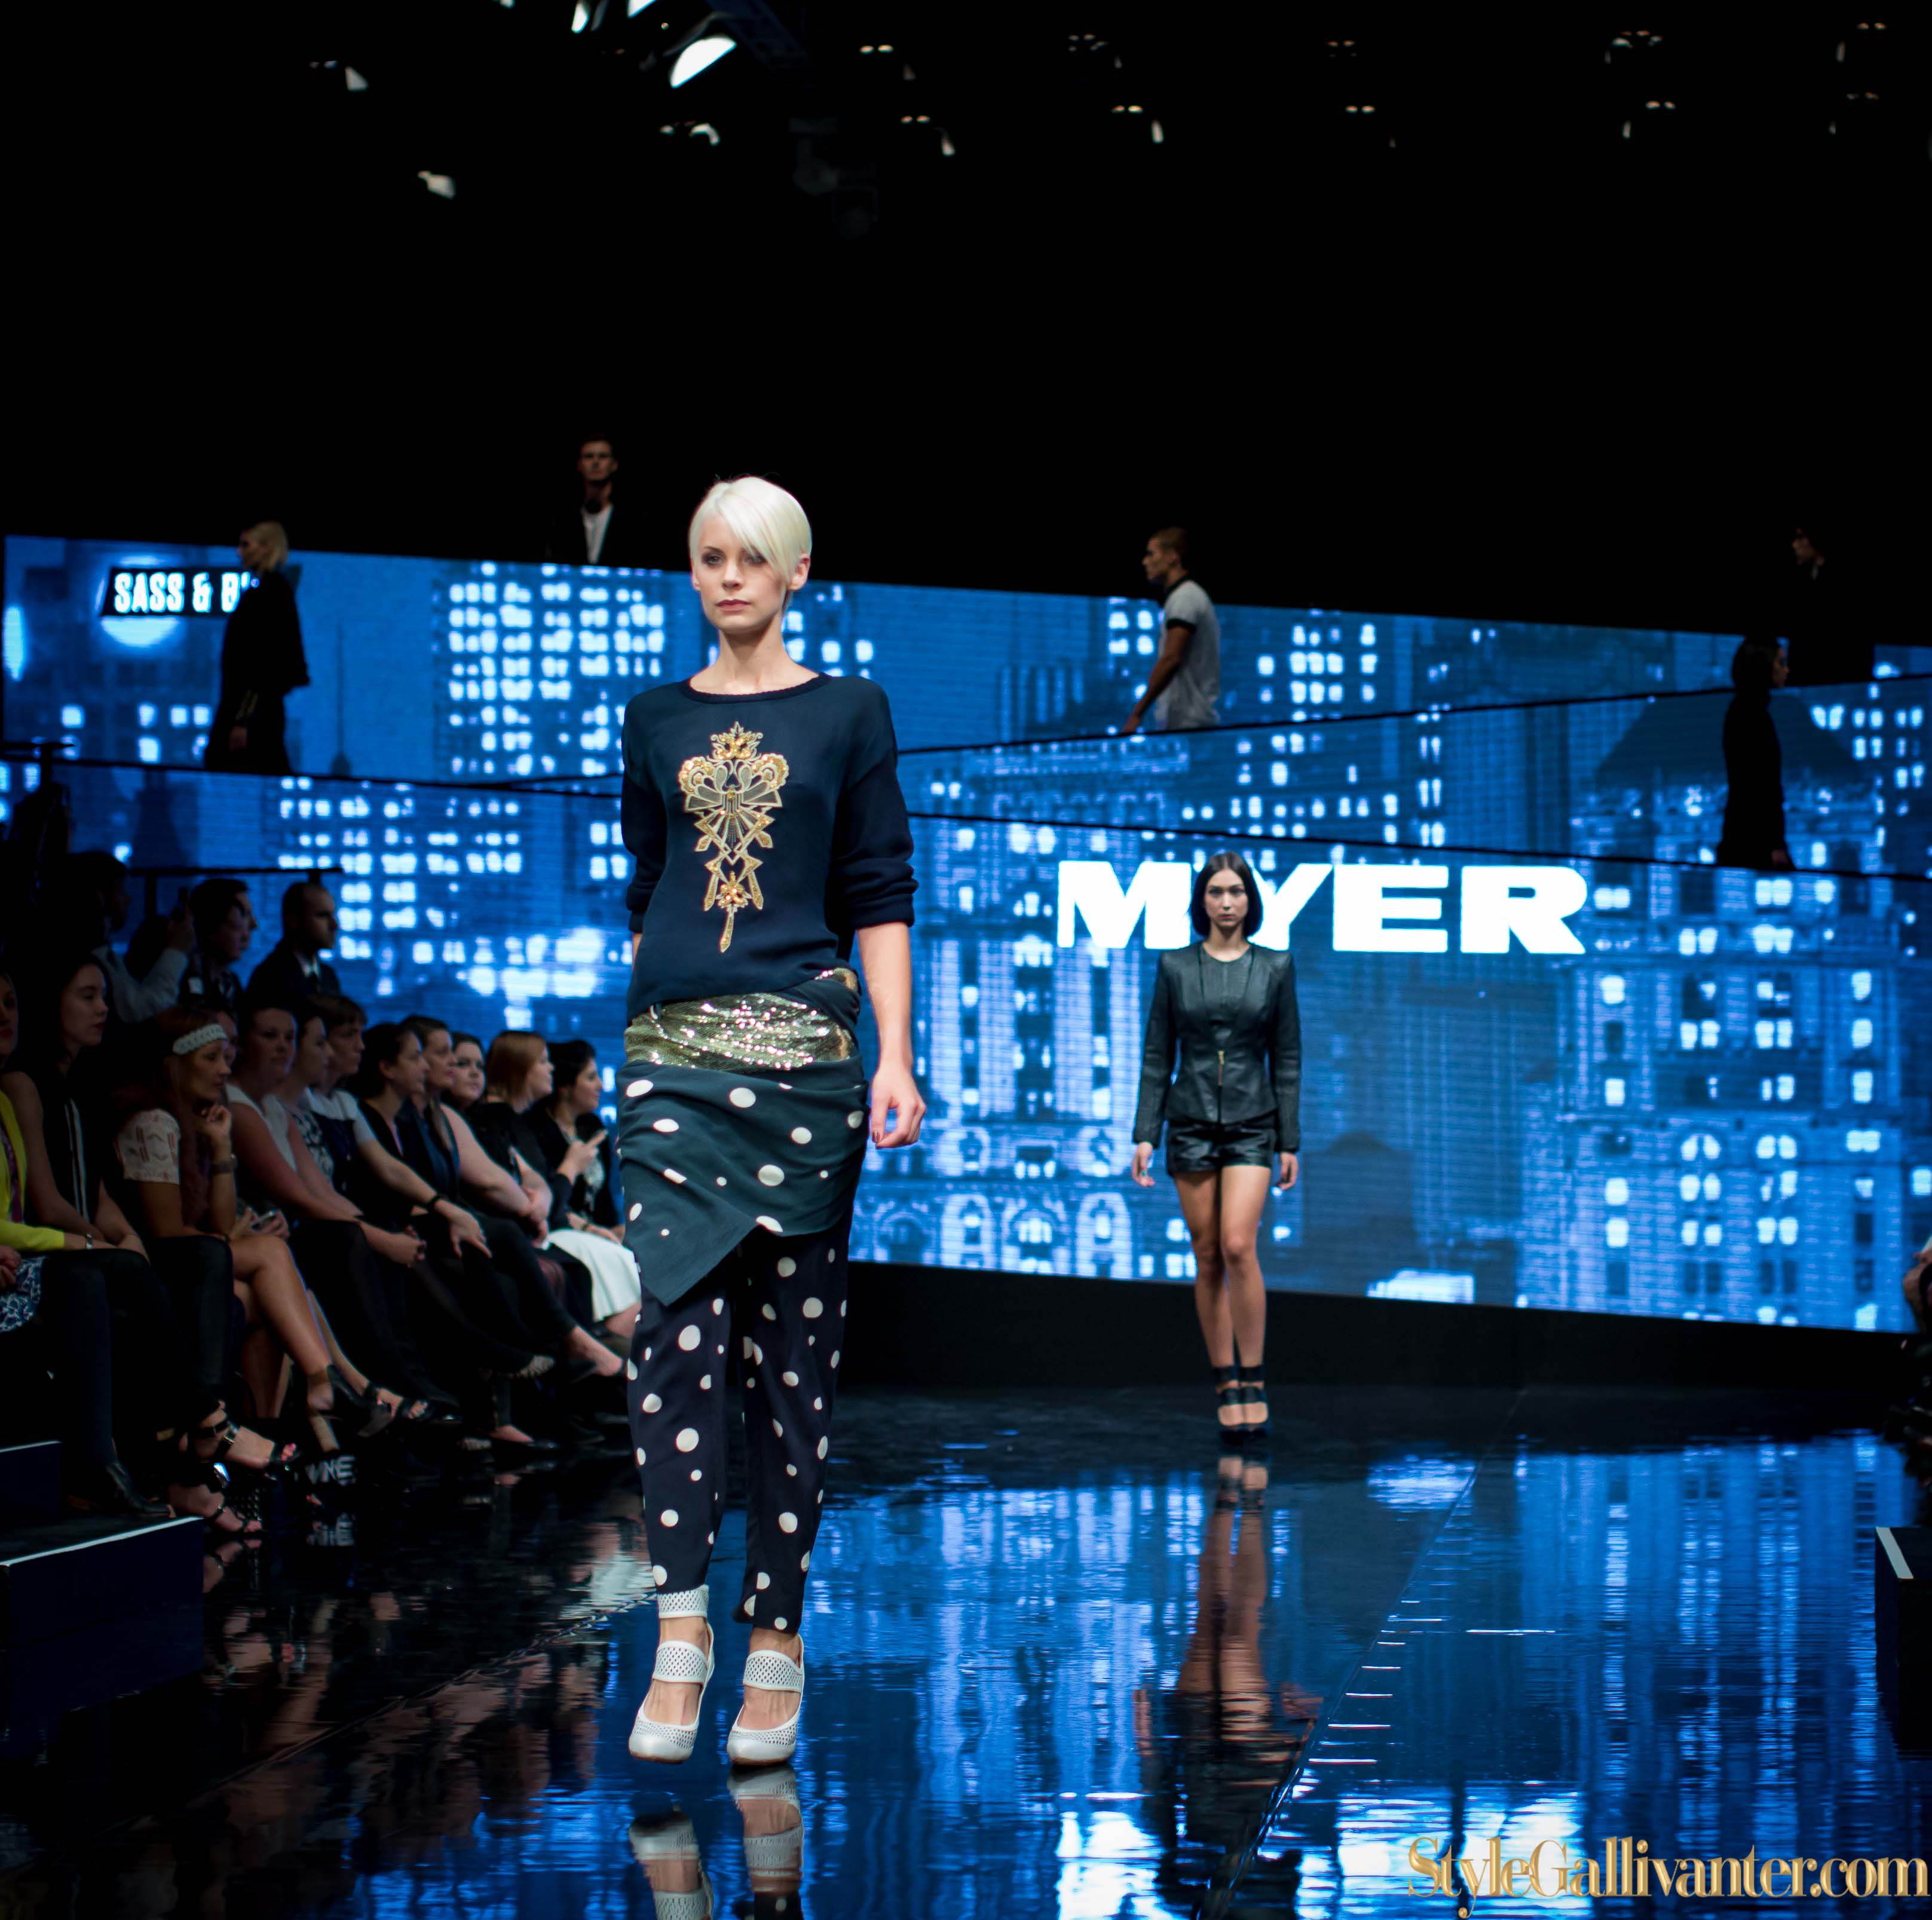 myerAW2014_MYERFASHIONLAUNCH_MYER-FASHION-LAUNCH_JENNIFER-HAWKINS-MYER-2014_MYER-AUTUM-WINTER-2014_MYER-AW-2014_KATE-PECK-5